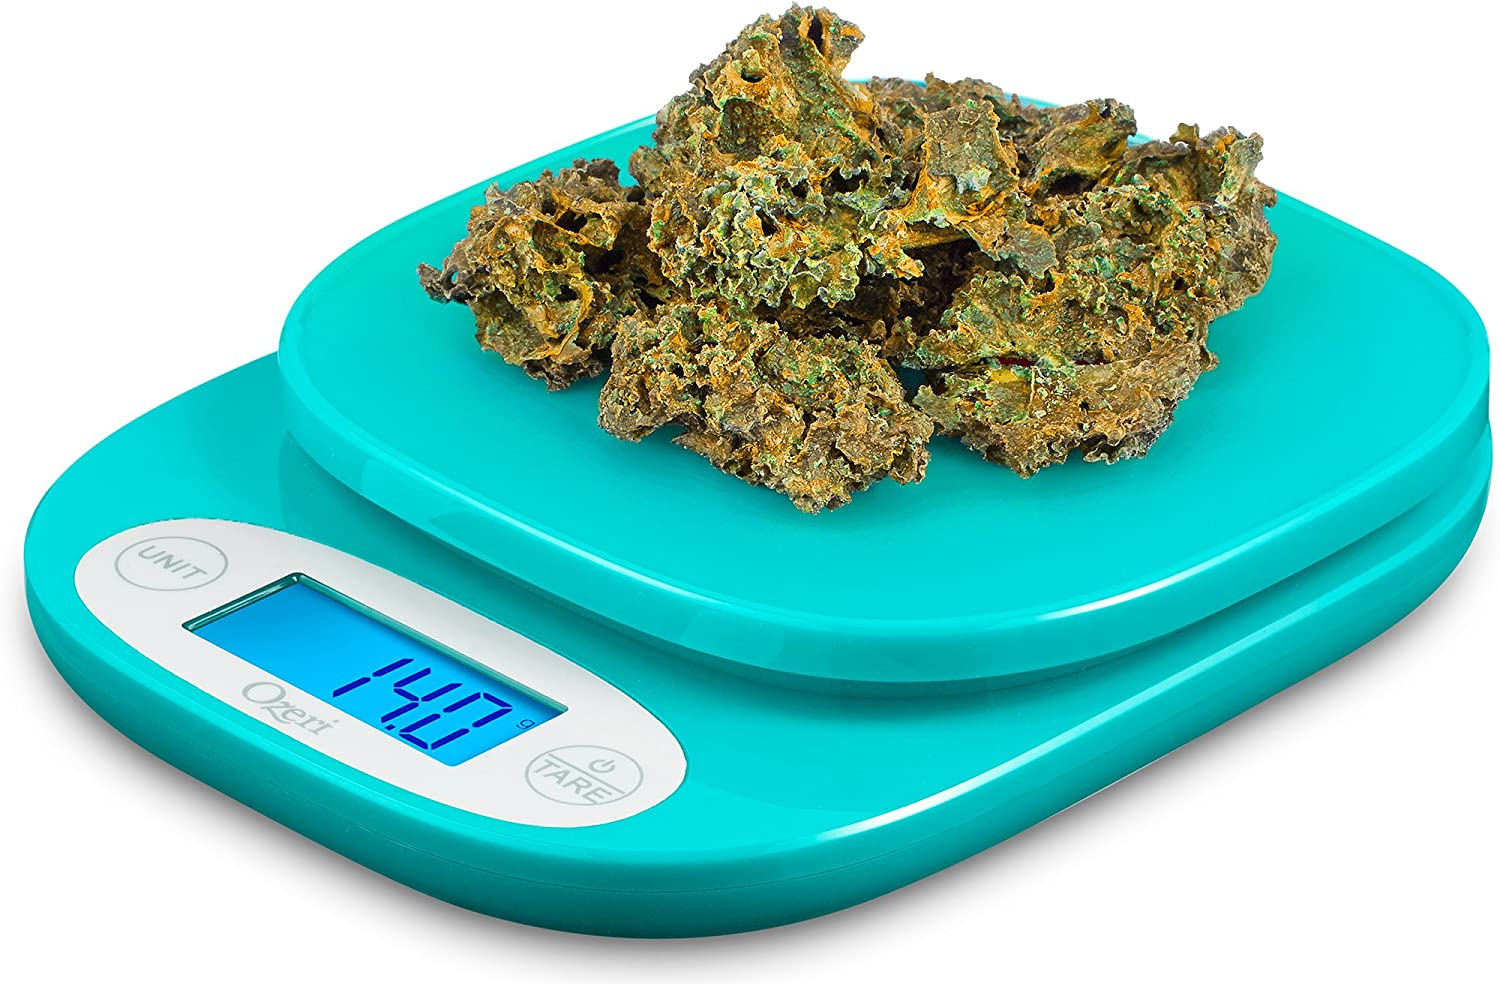 Ozeri ZK24-T ZK420-T Garden And Kitchen Scale, One Size, Teal